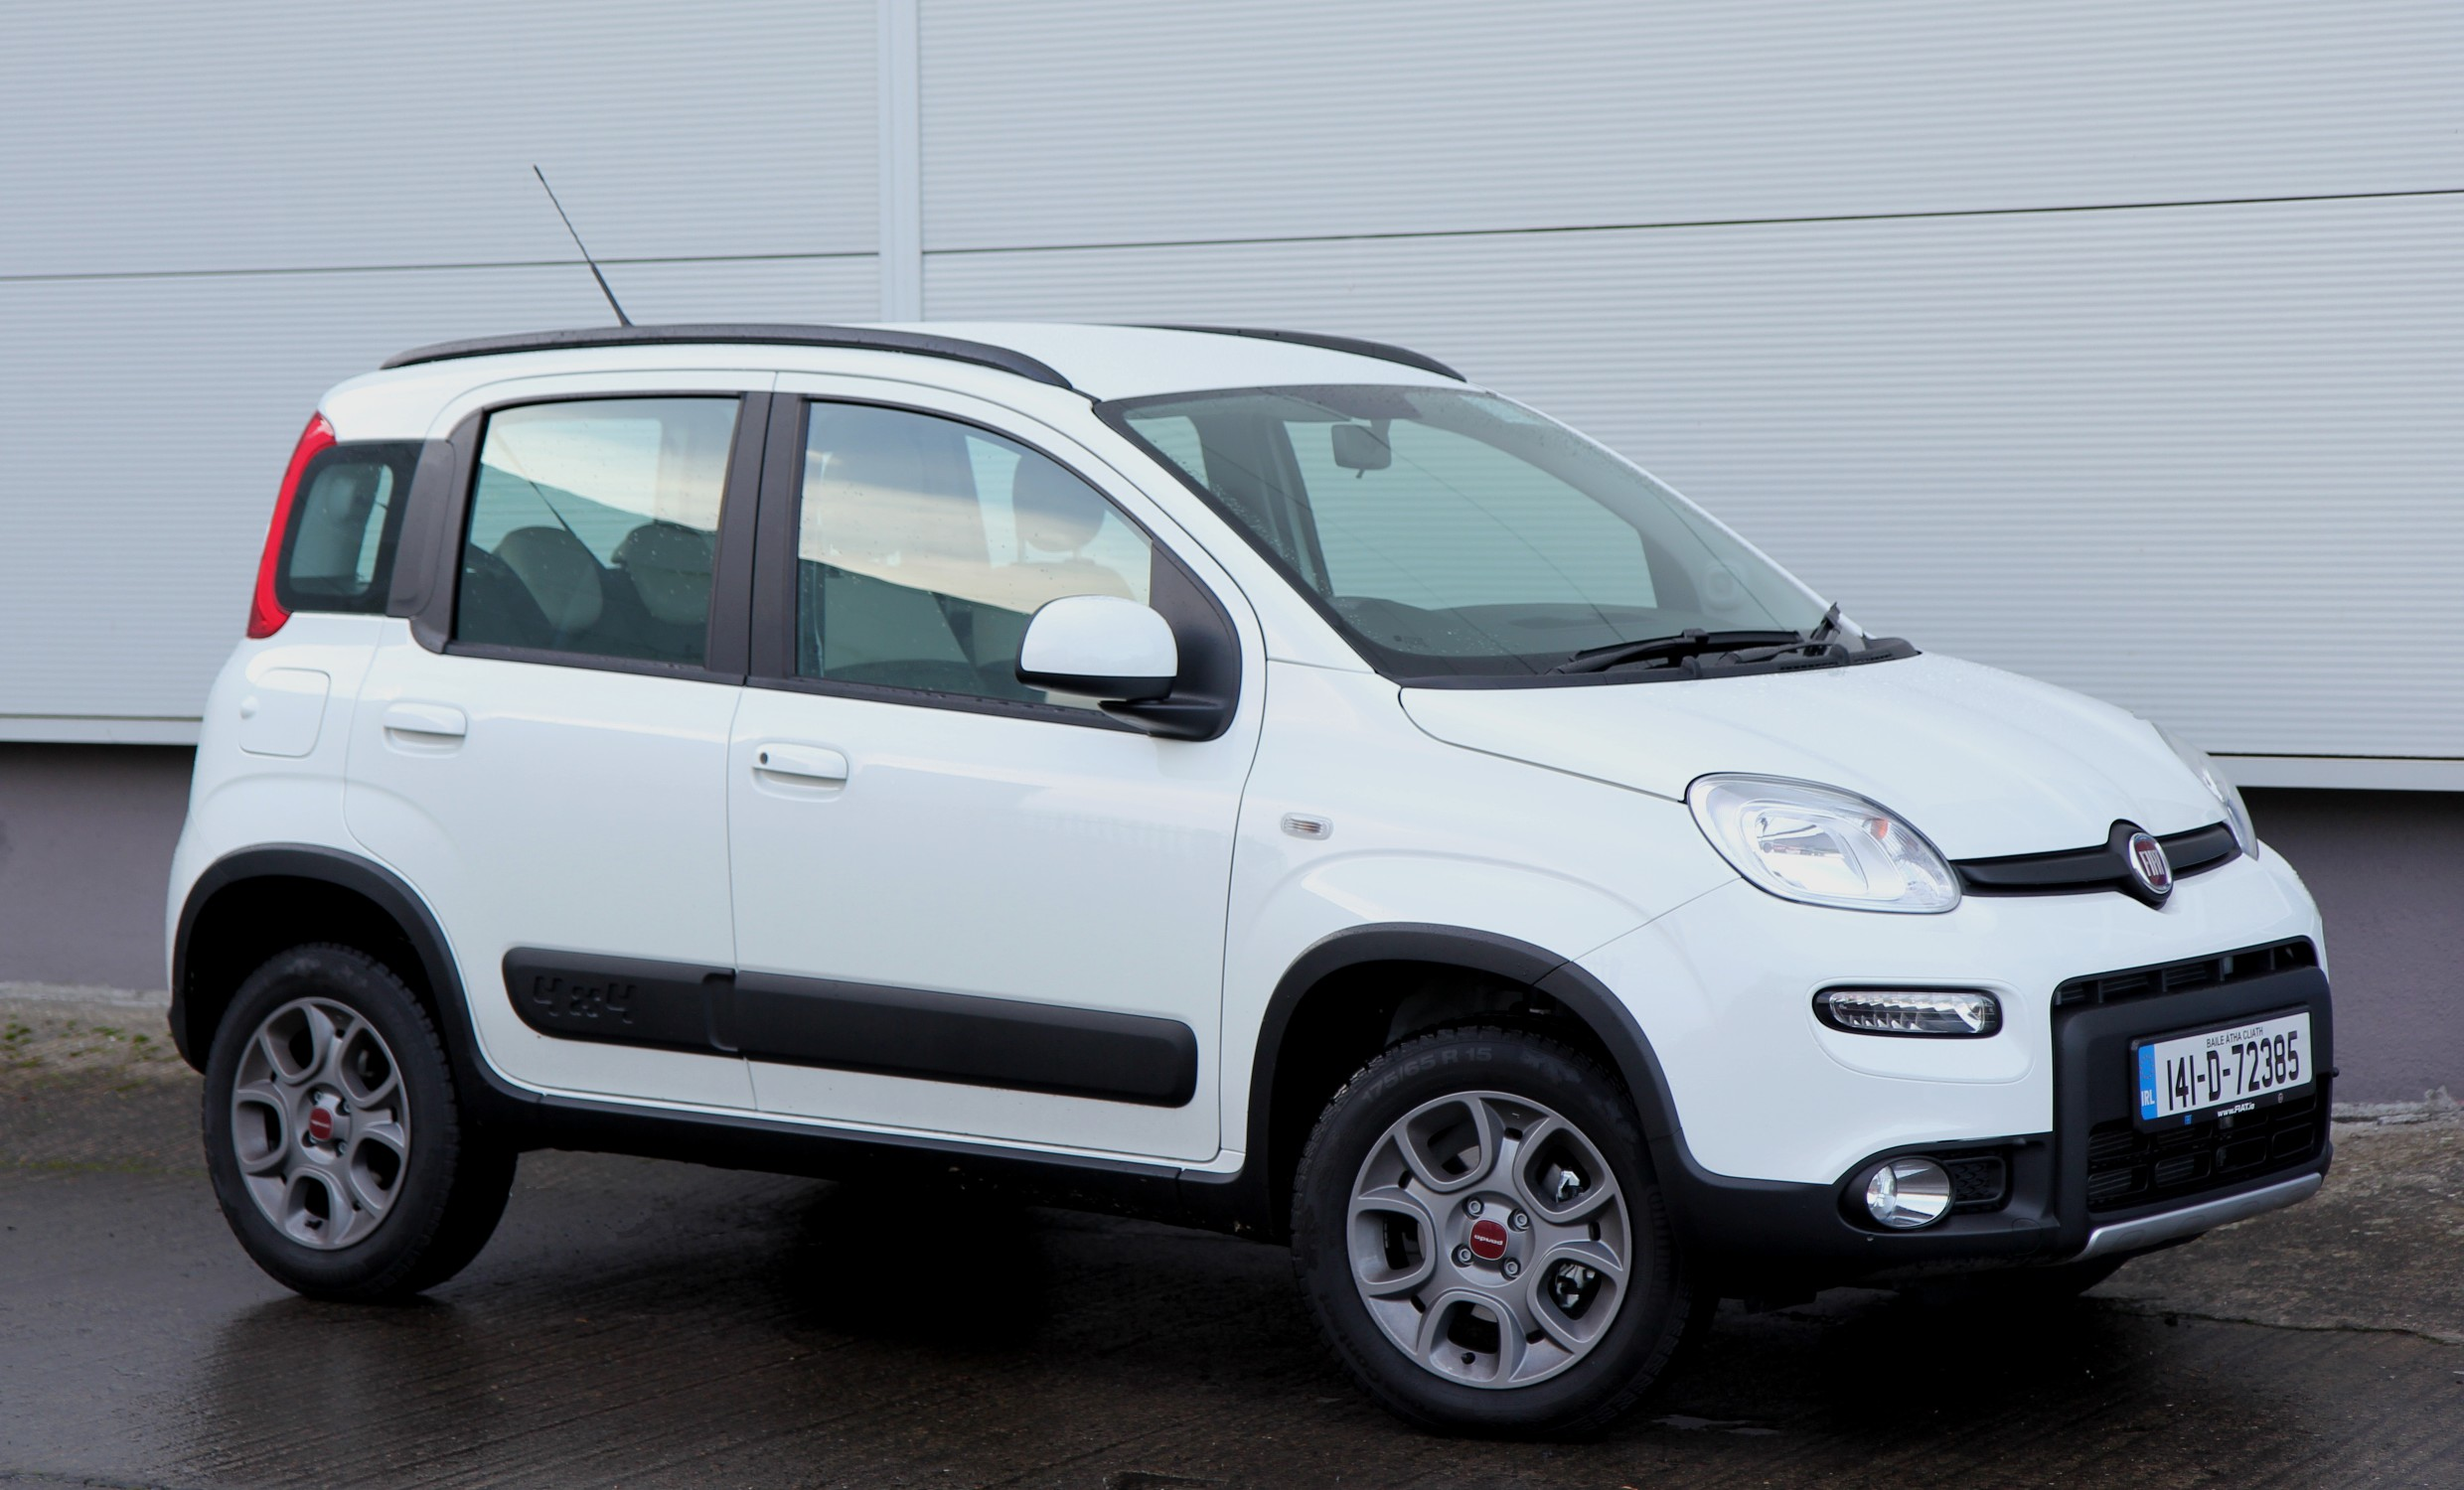 Used Fiat Panda Cars for Sale in Ireland | CarBuyersGuide.net